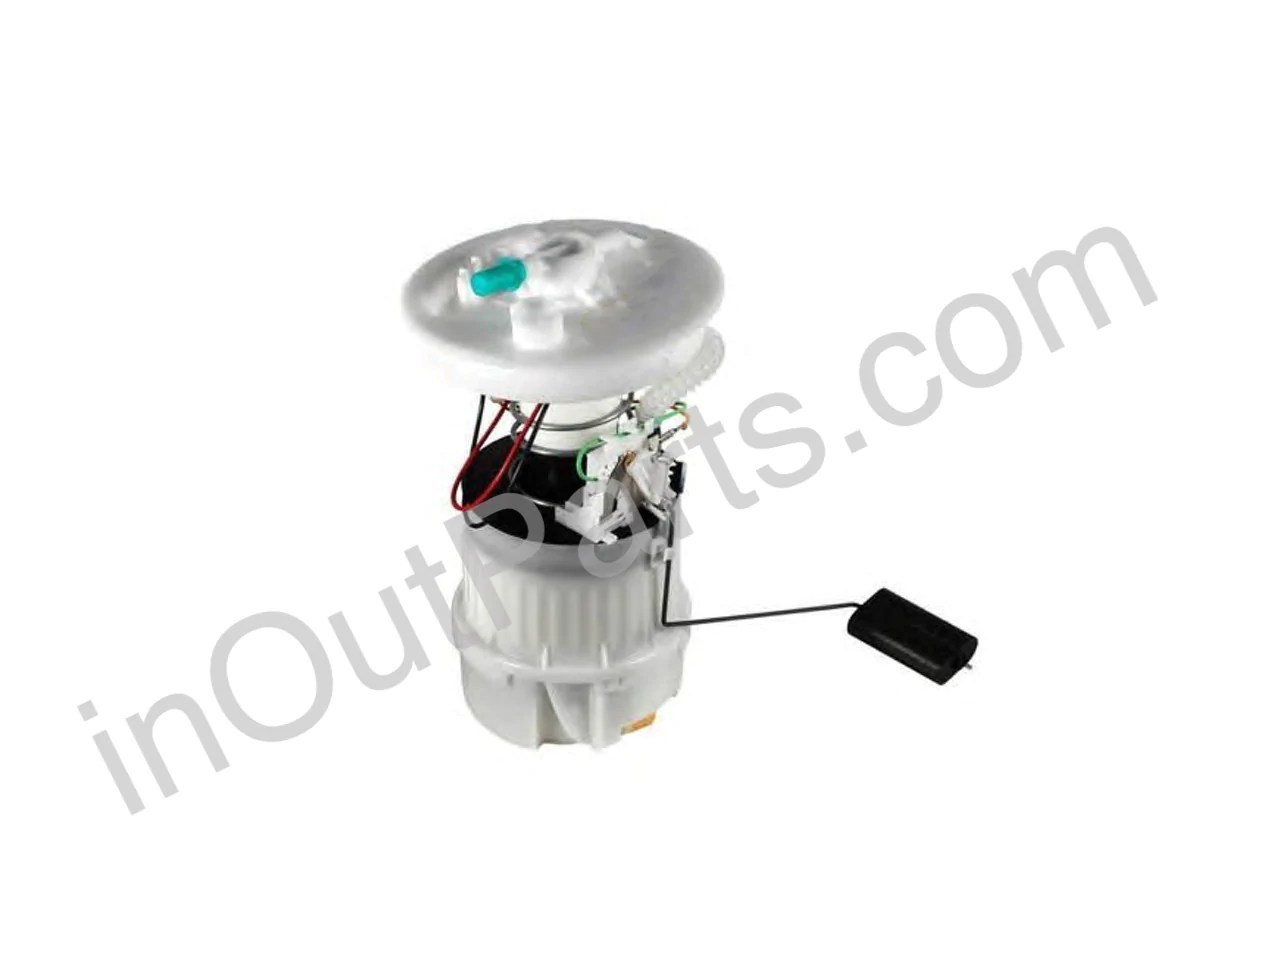 hight resolution of fuel filter fits ford focus 2005 2006 2007 2008 2009 2010 2011 c max 2003 10 with pump